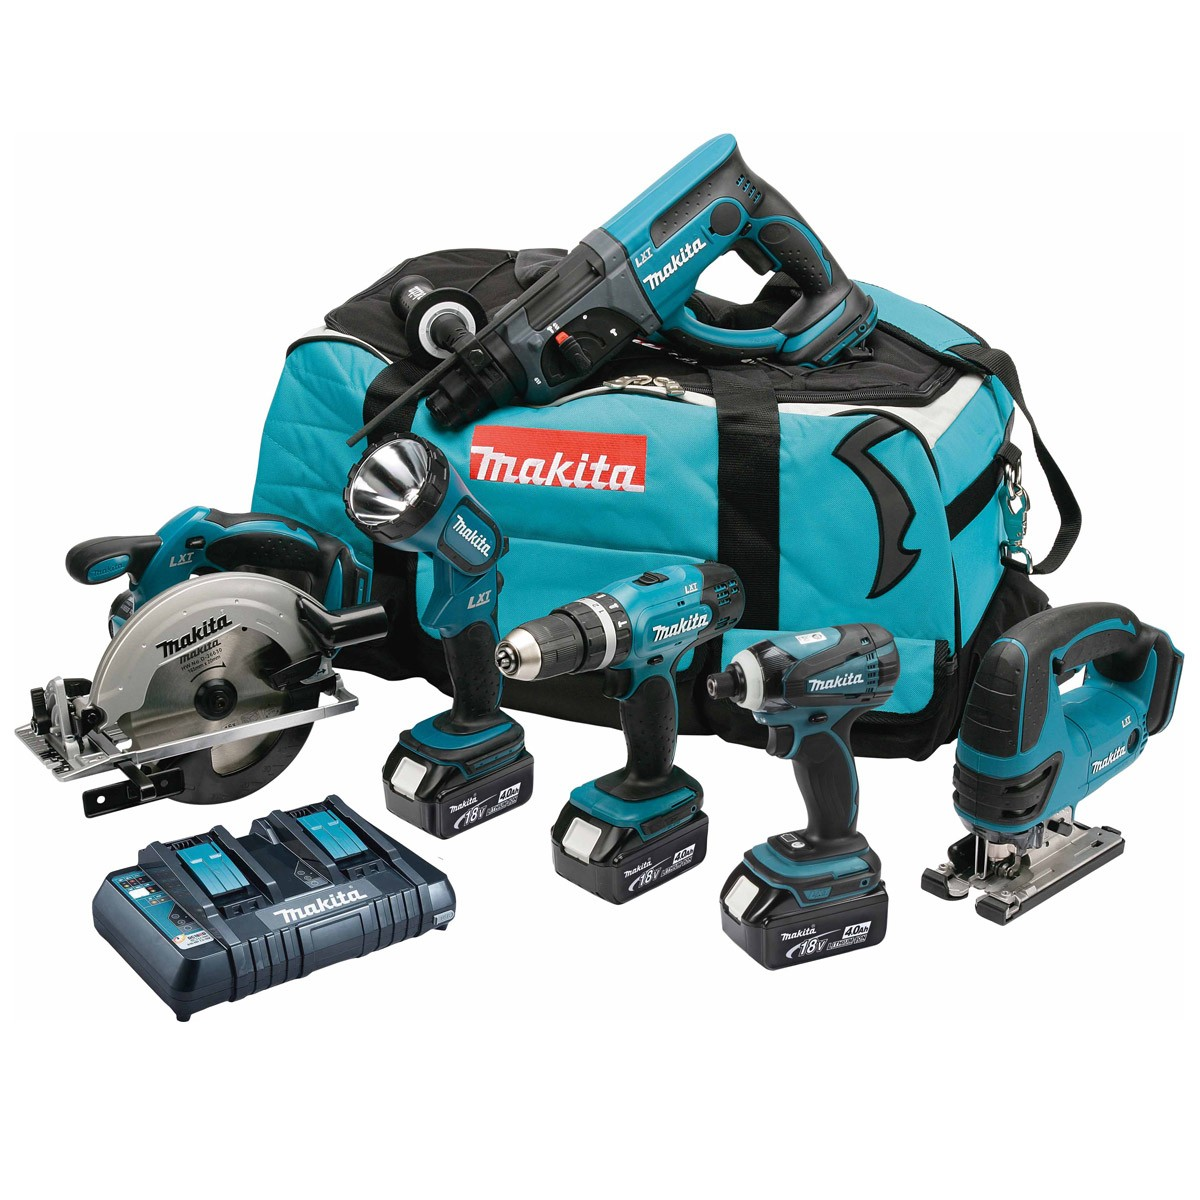 Makita DLX6017PM 18v 6 Piece Kit inc 3x 4Ah Batts with Twin Charger